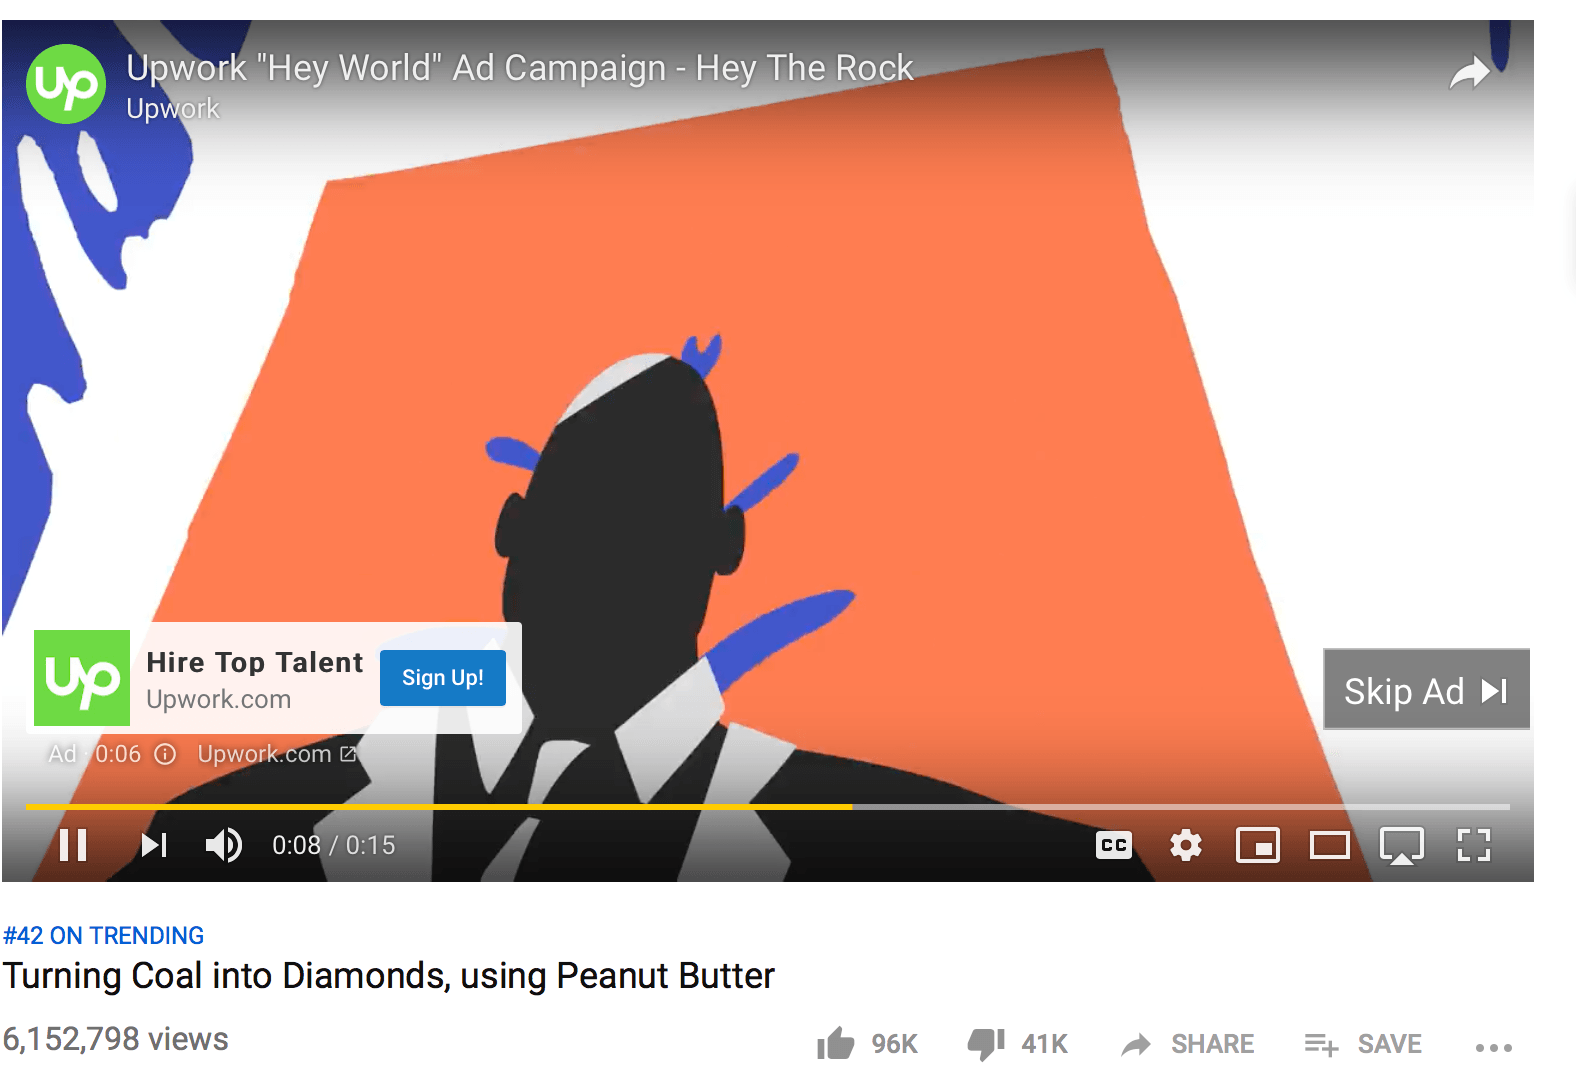 YouTube viseo ads are a valid monetization method not exposed to ad blockers